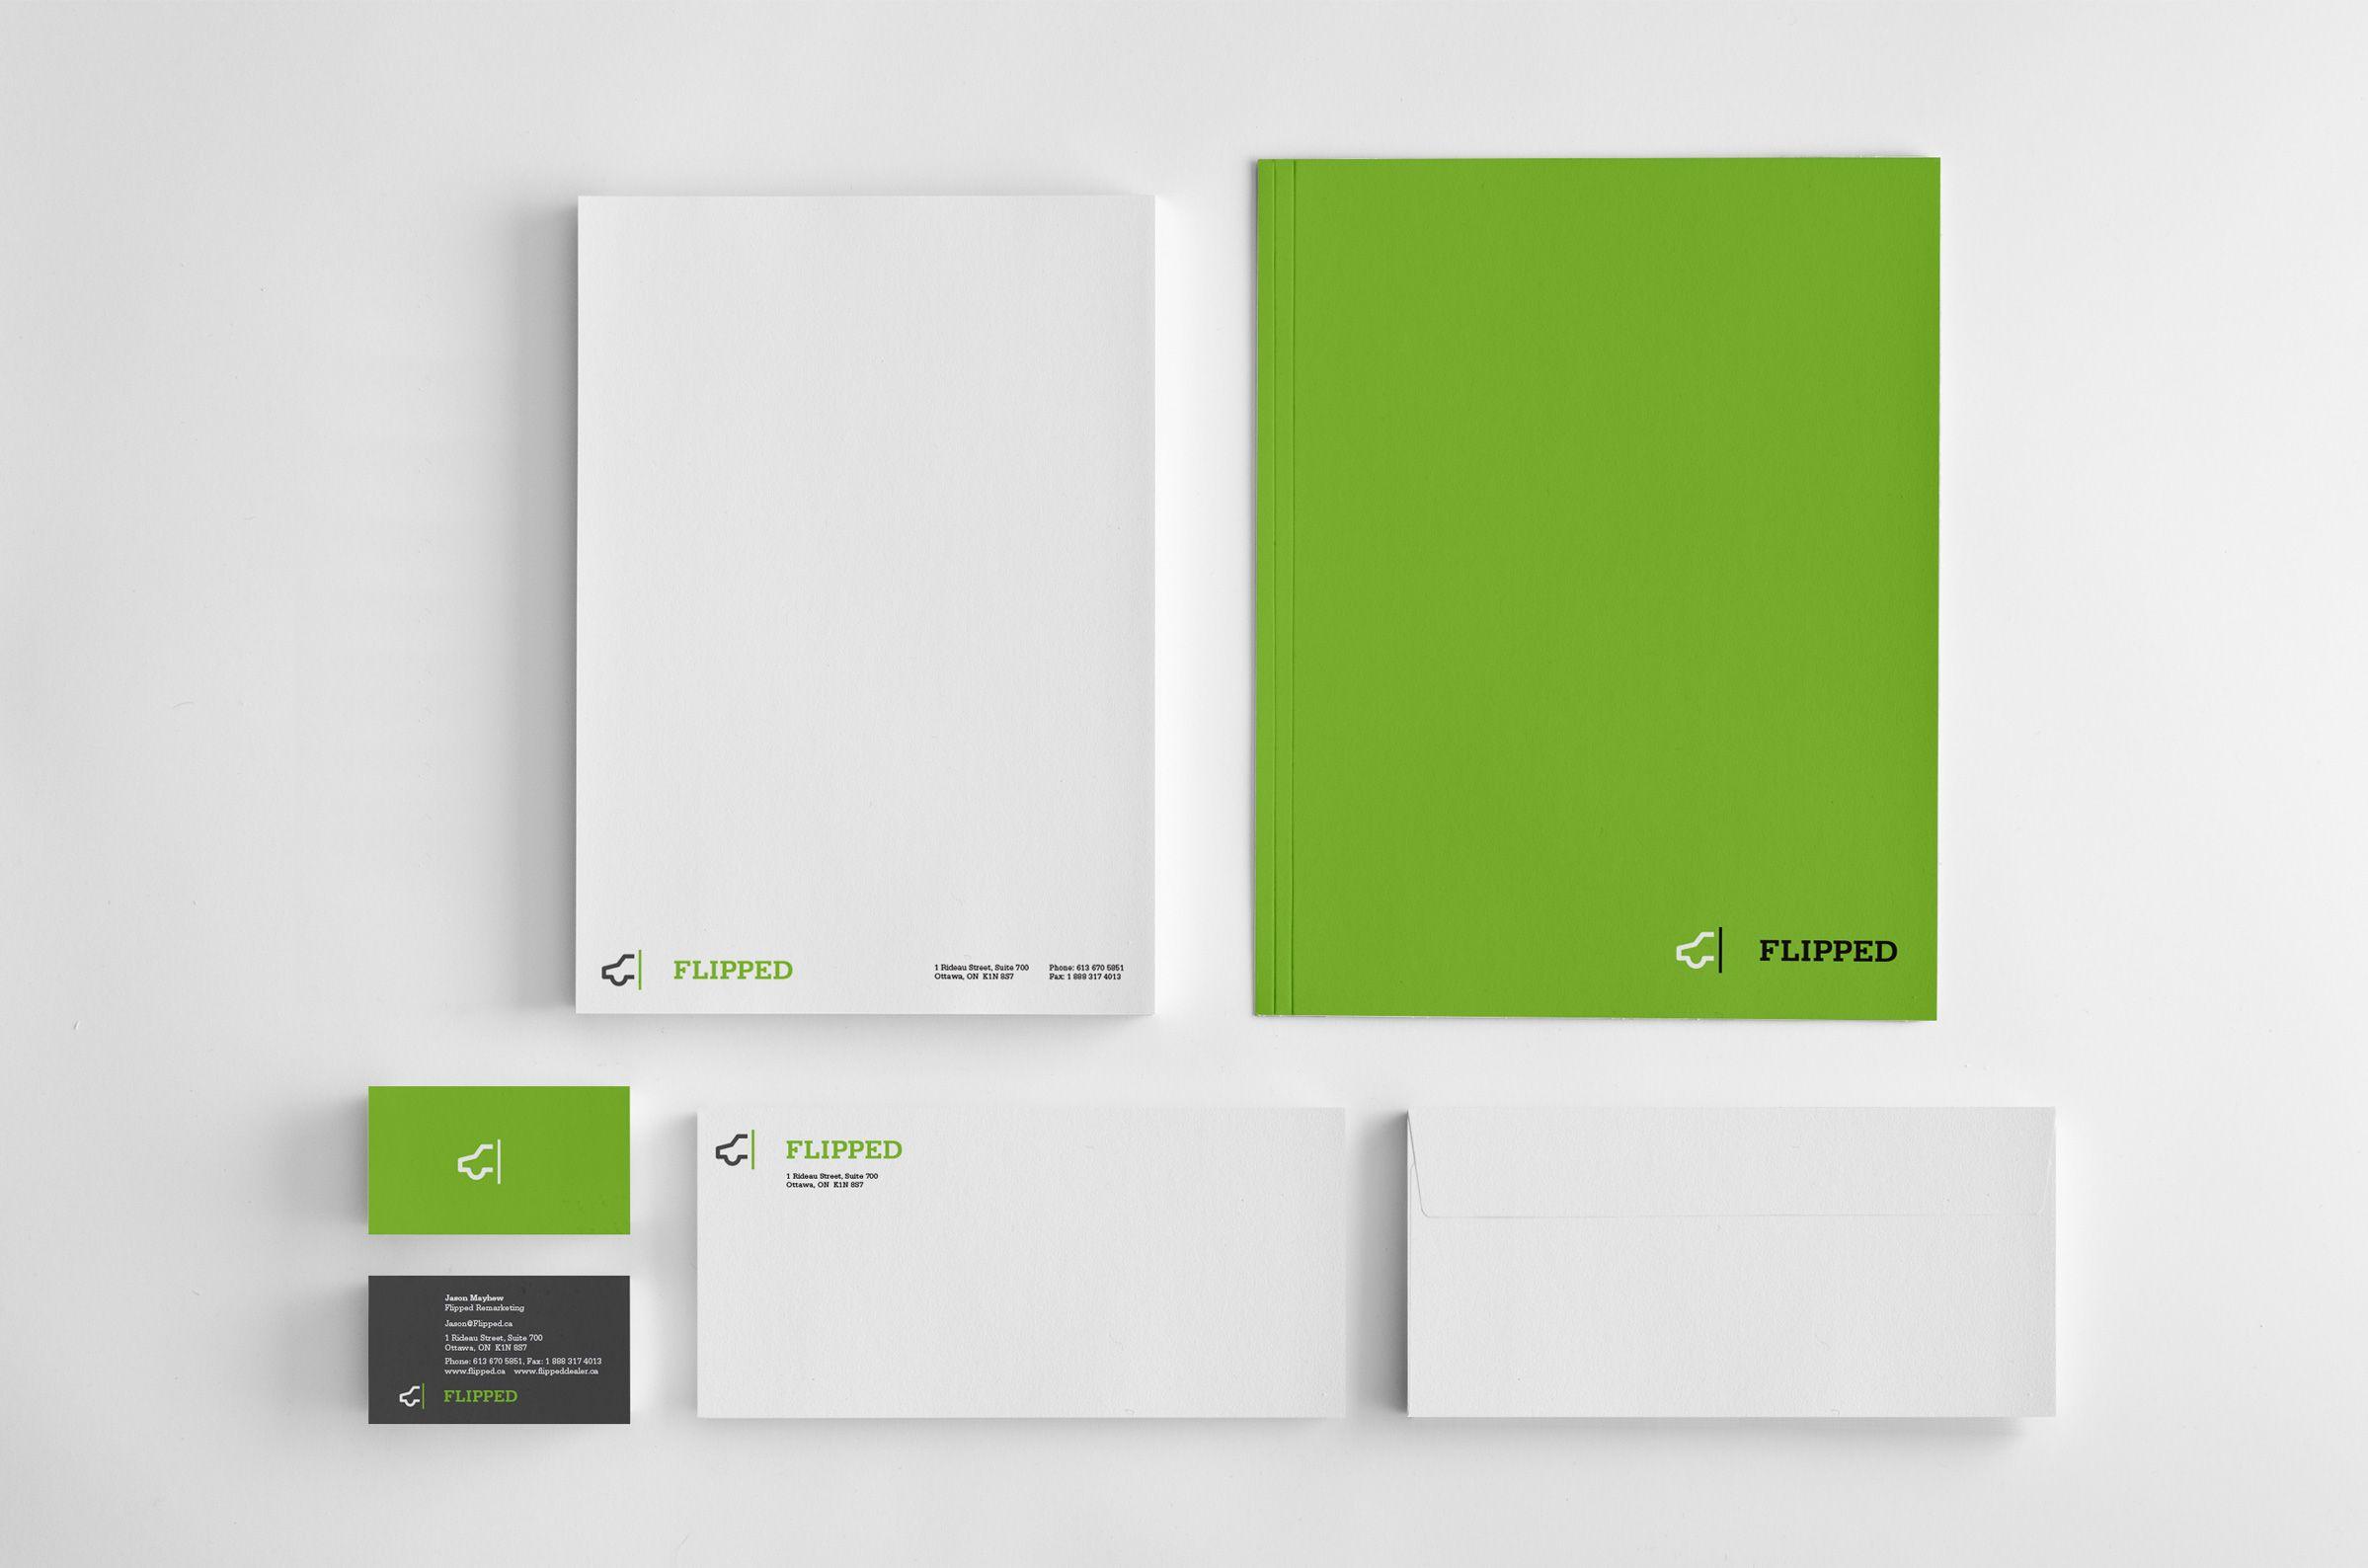 Stationery for Flipped, an automobile sales company by Ottawa Graphic Designer idApostle